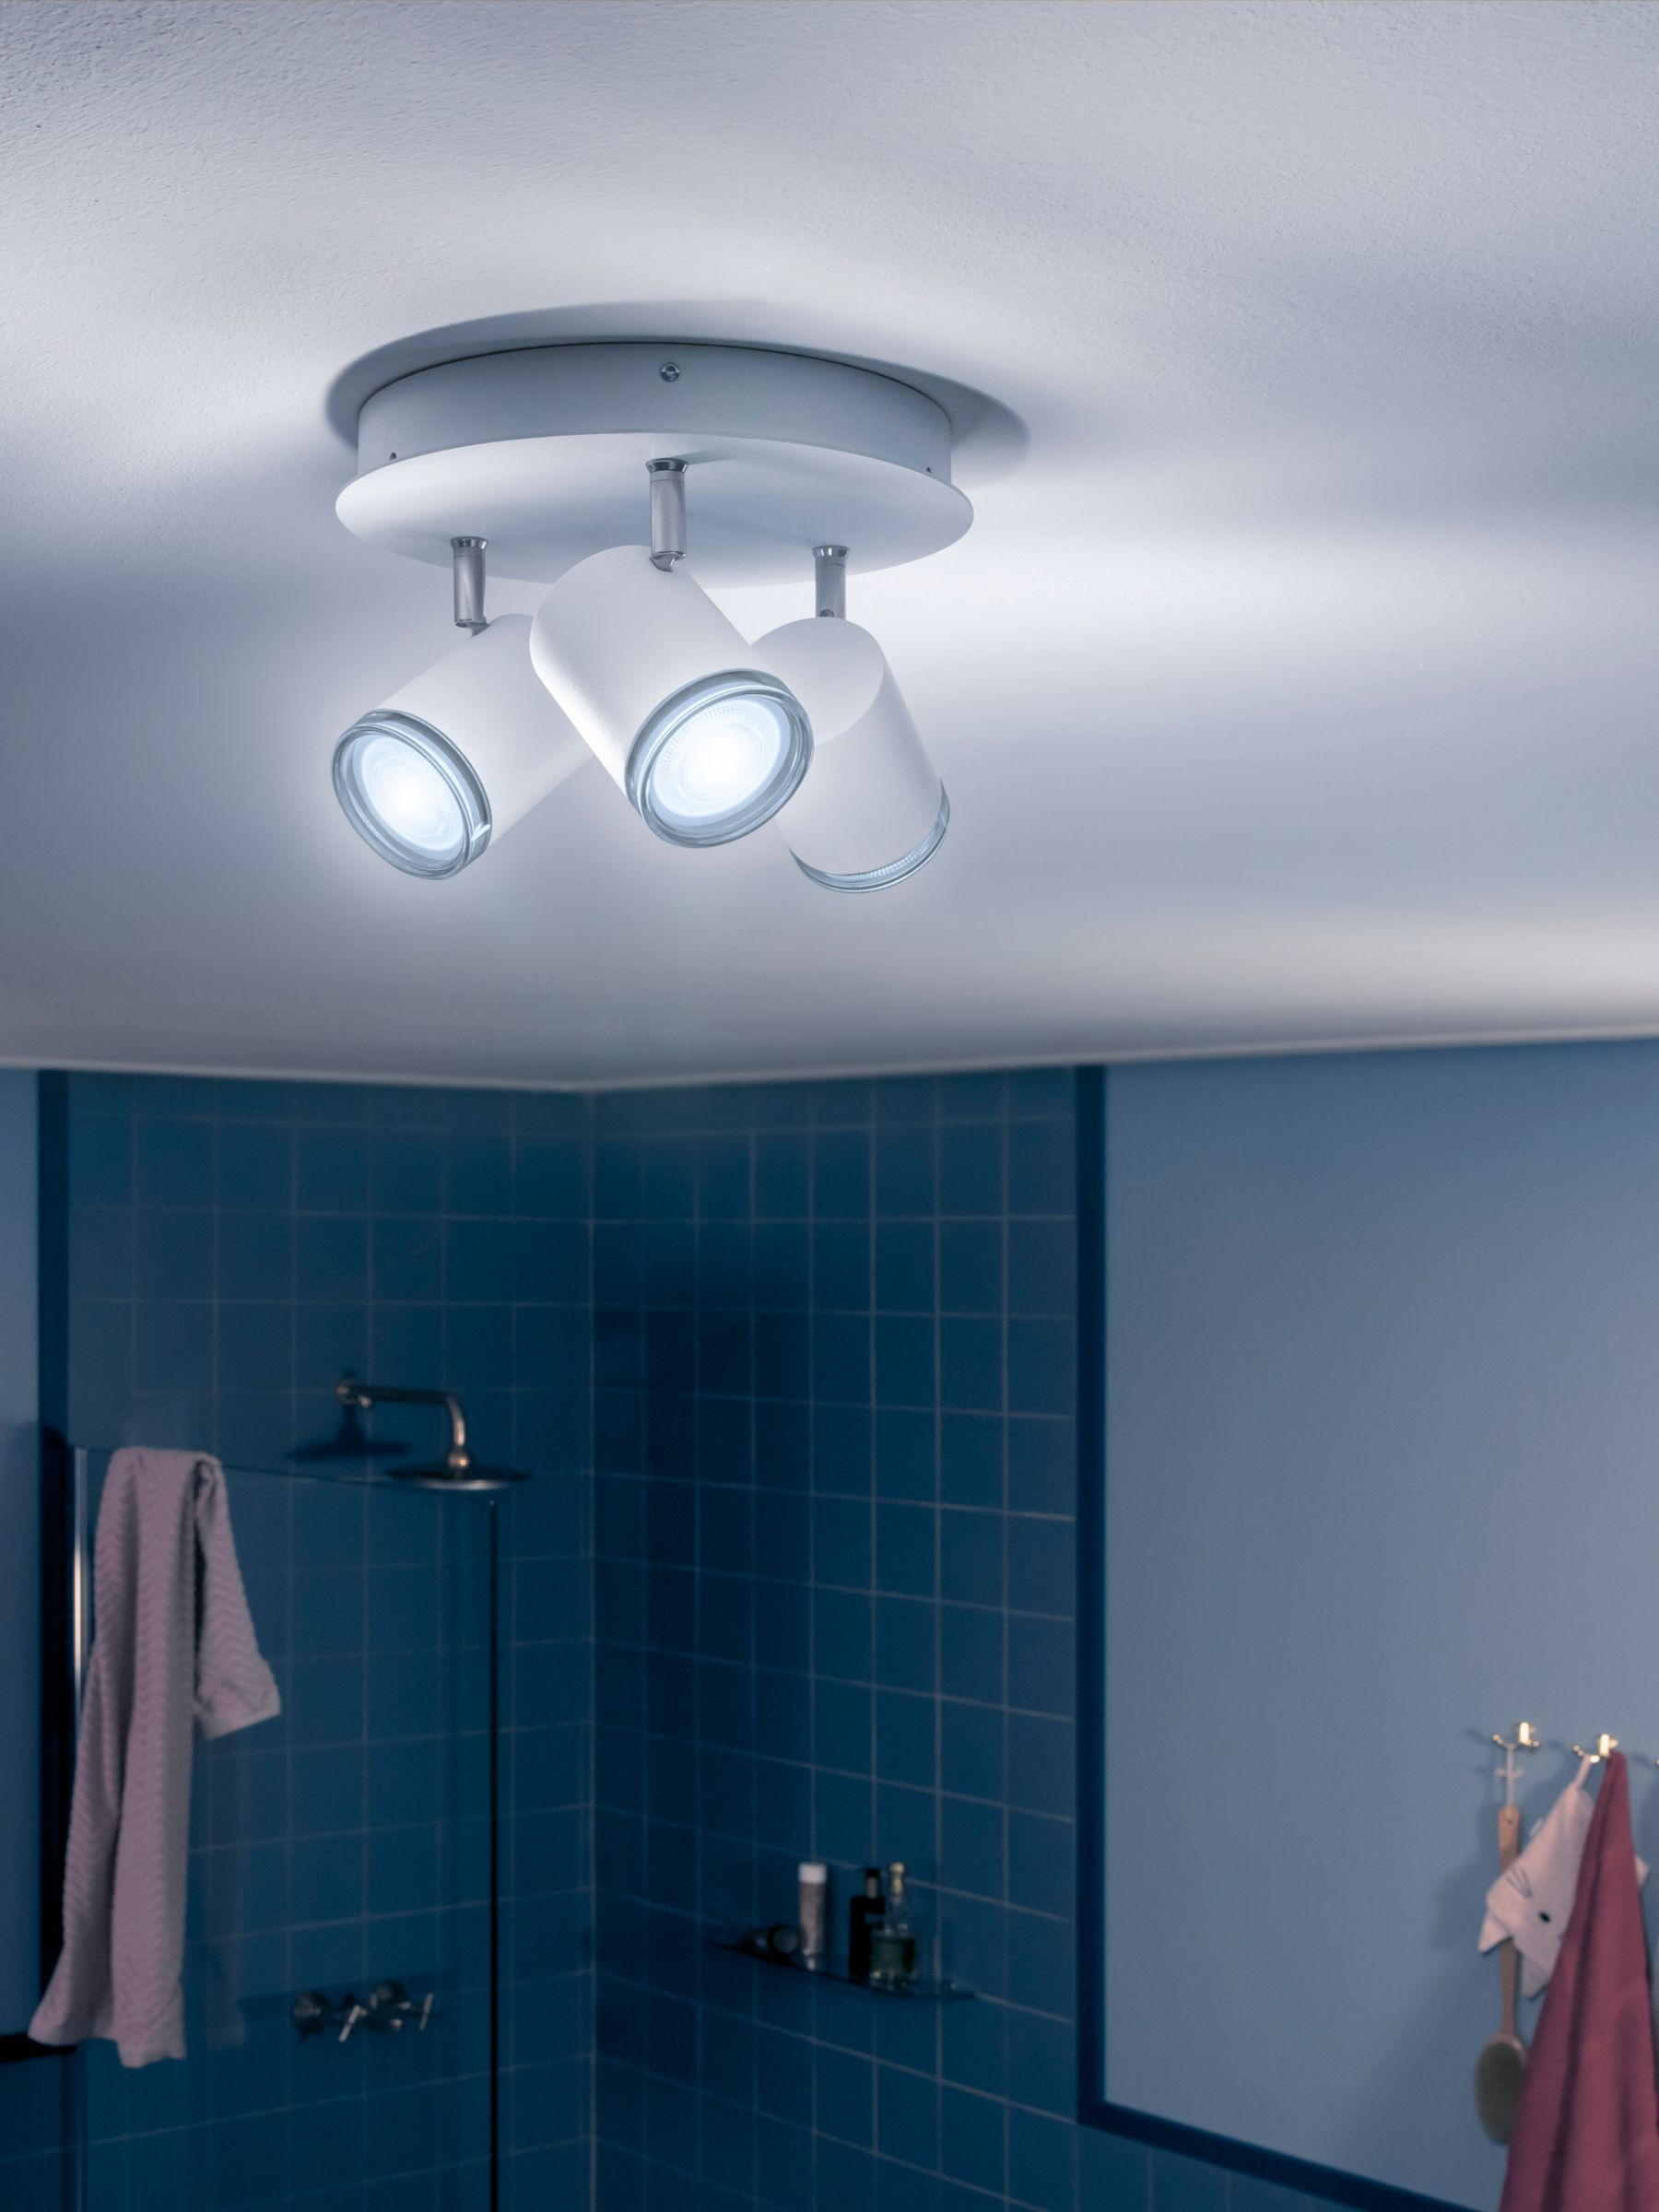 Ambiance Et Style Poitiers philips hue white ambiance adore led triple bathroom